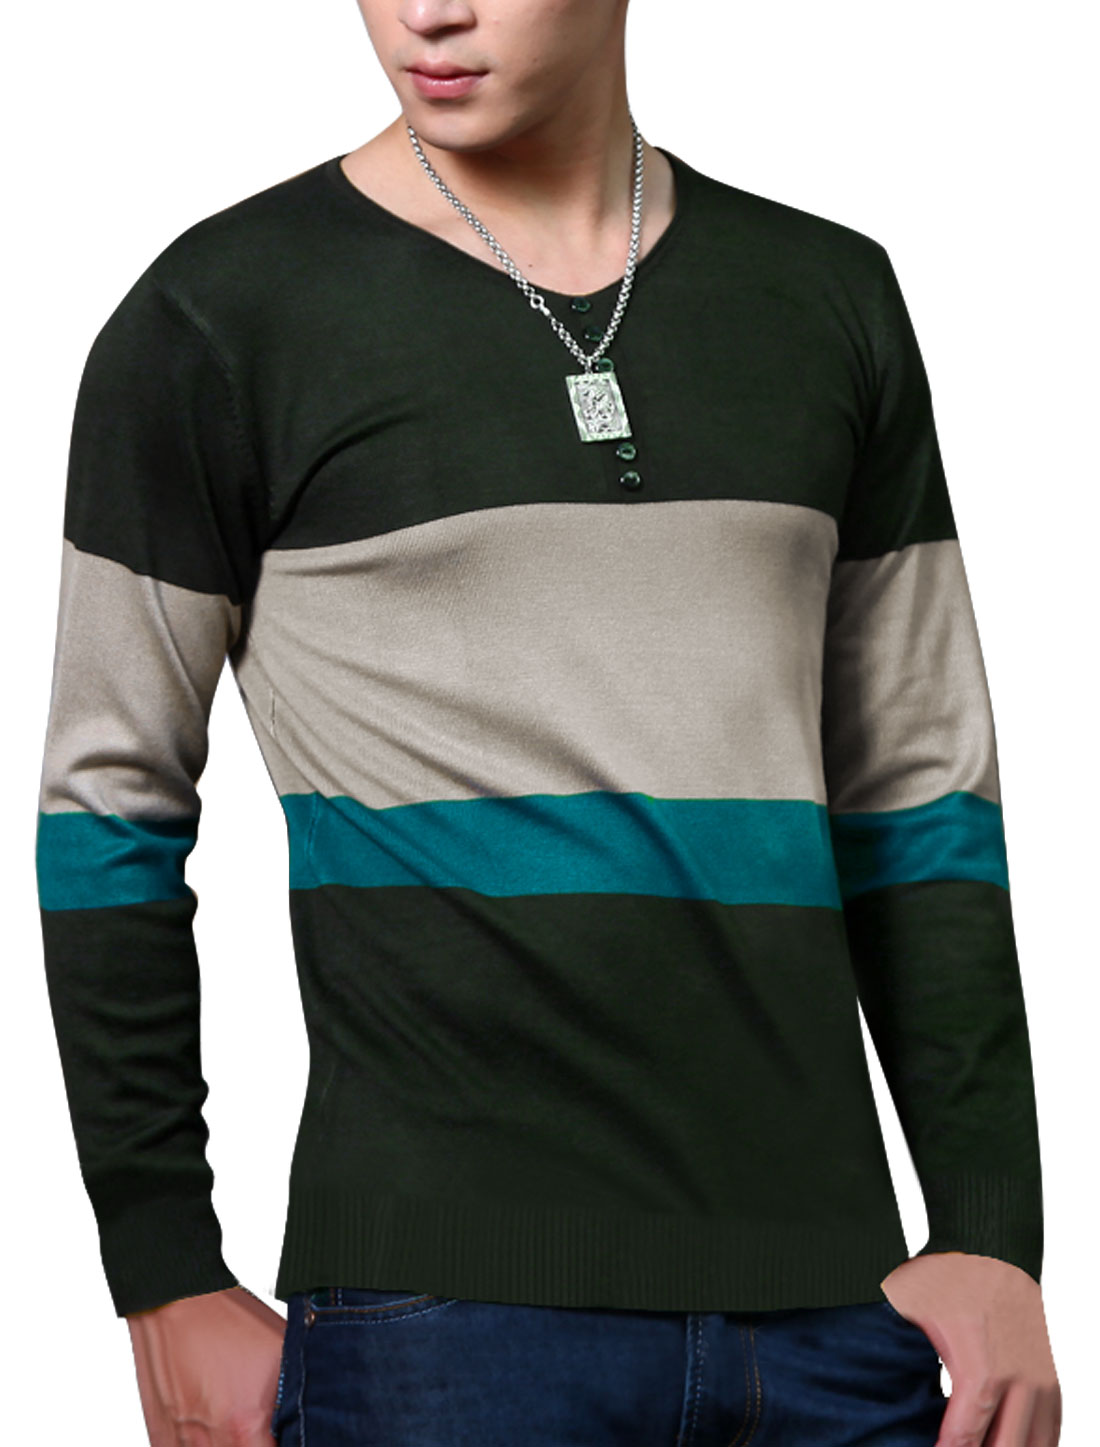 Men Long Sleeves Contrast Color V Neck Knit Shirt Dusty Green M